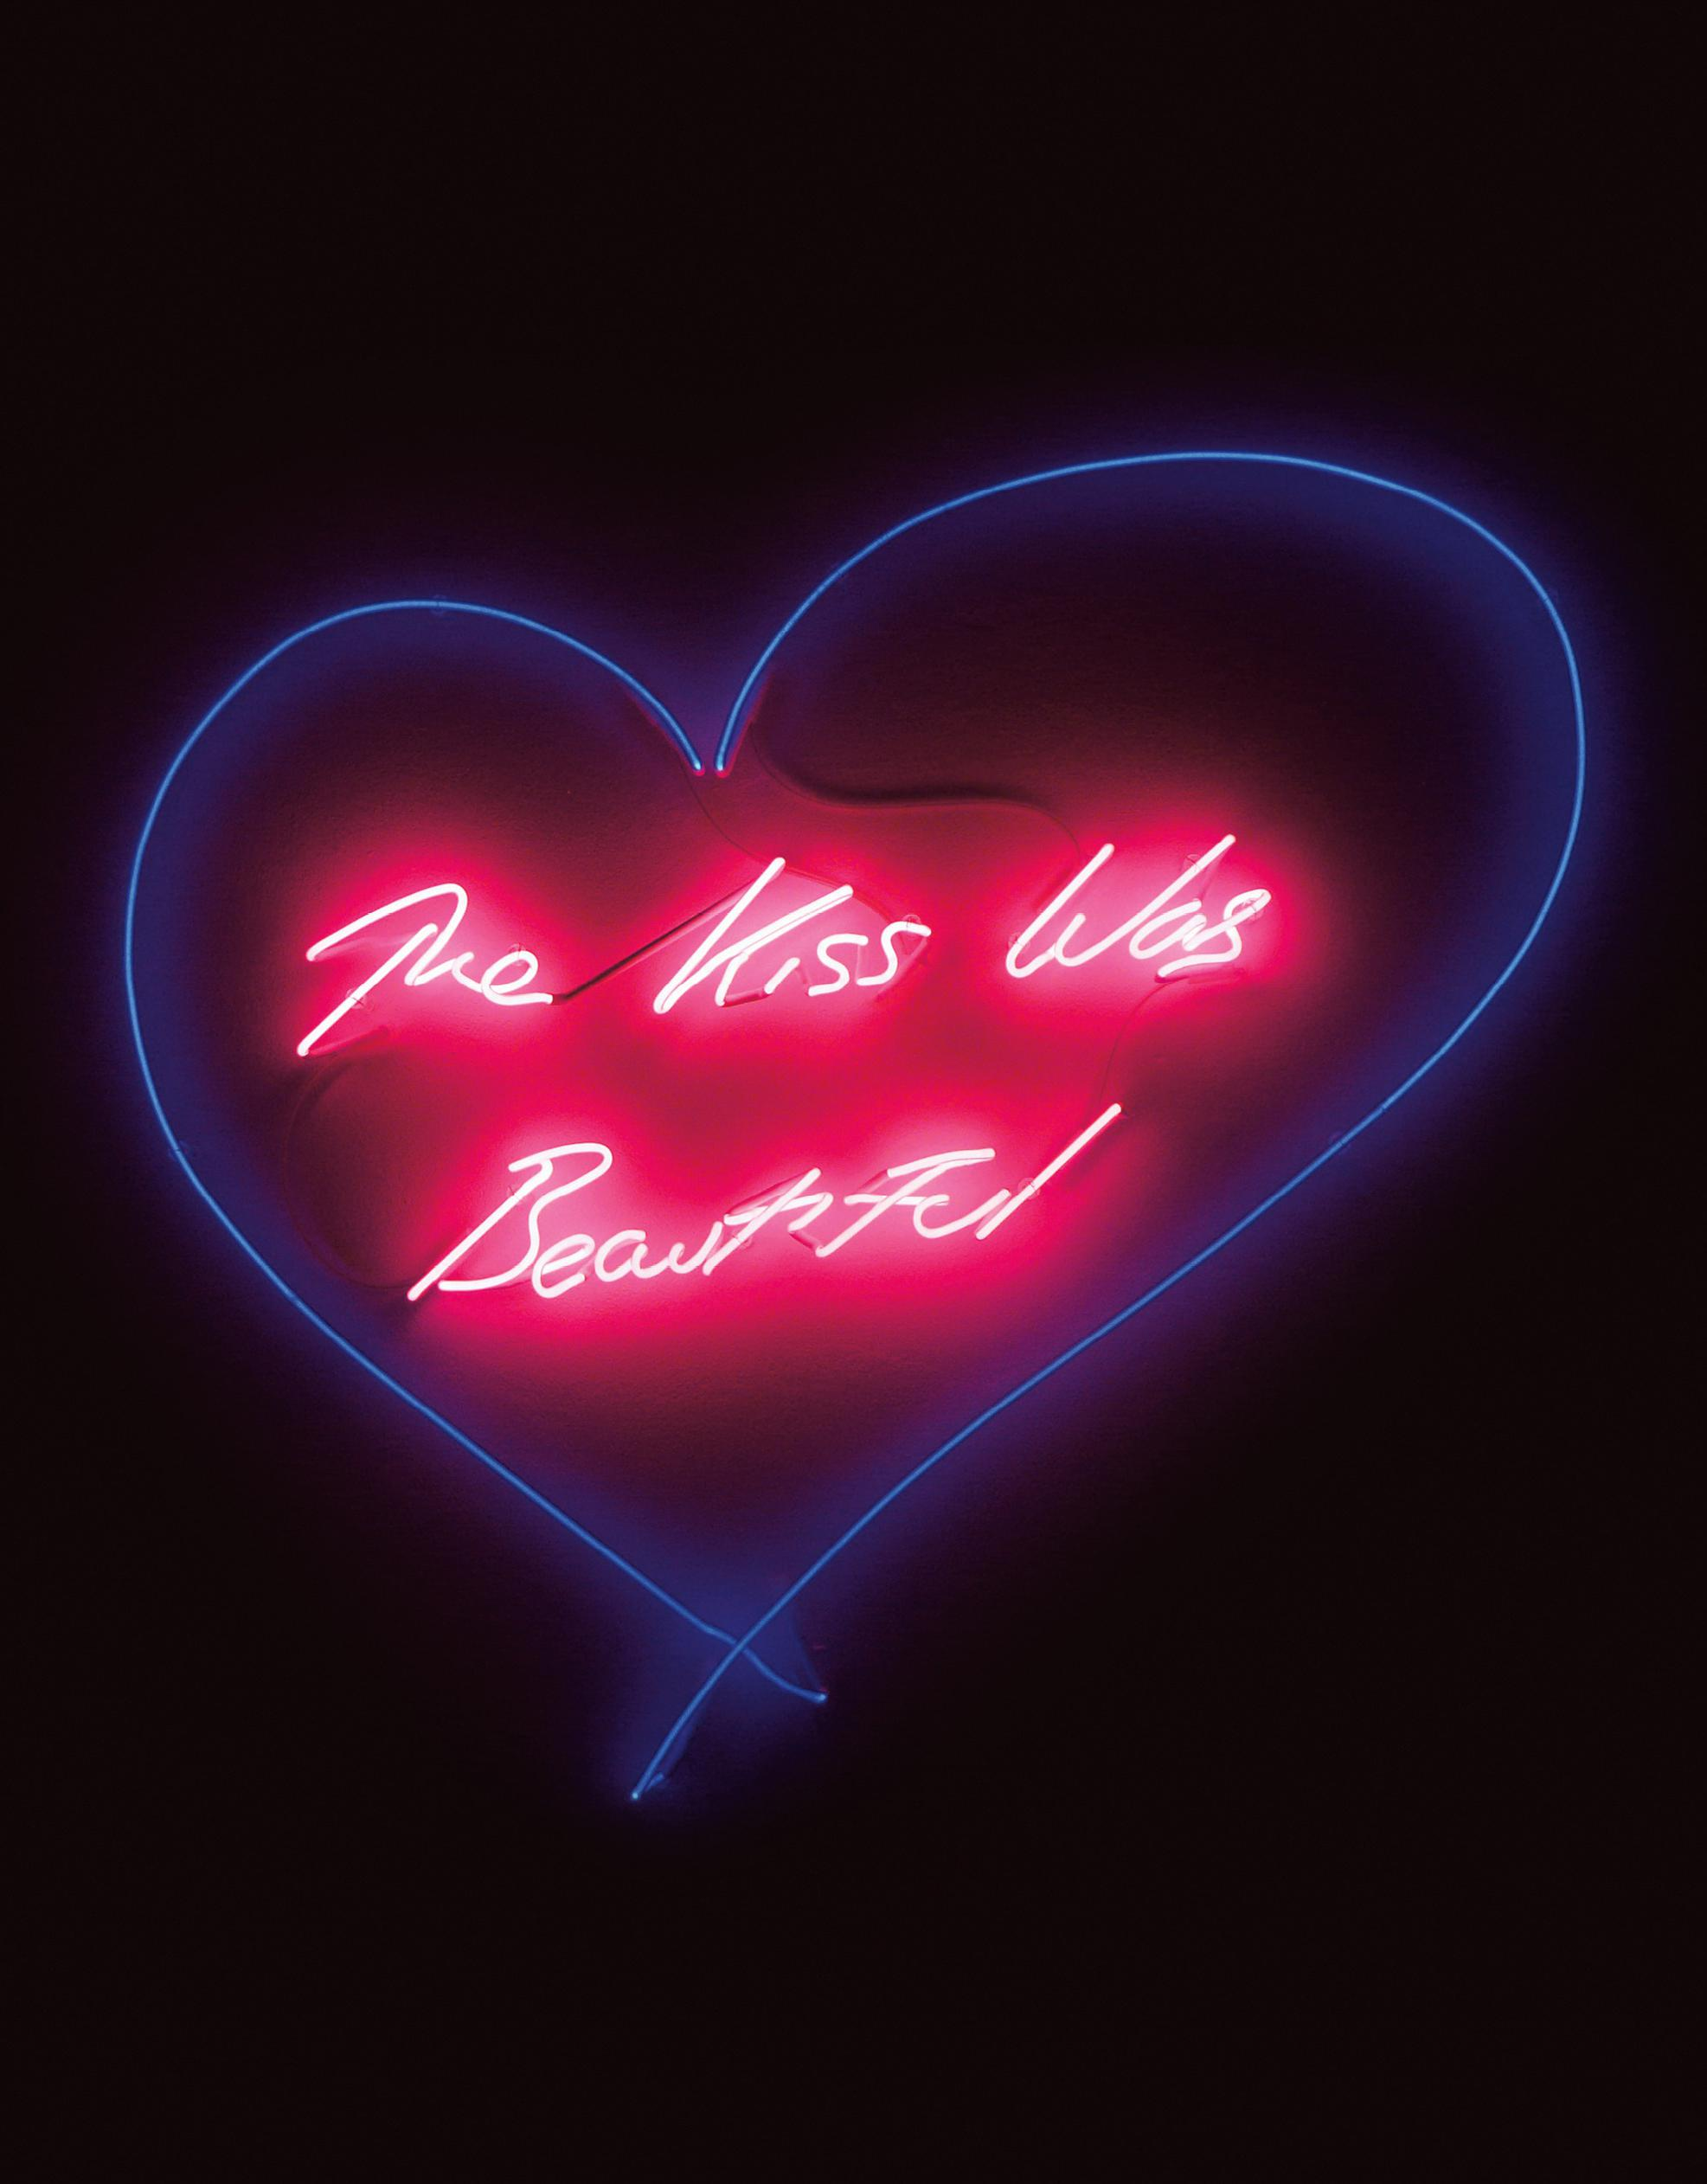 Tracey Emin-The Kiss Was Beautiful-2012